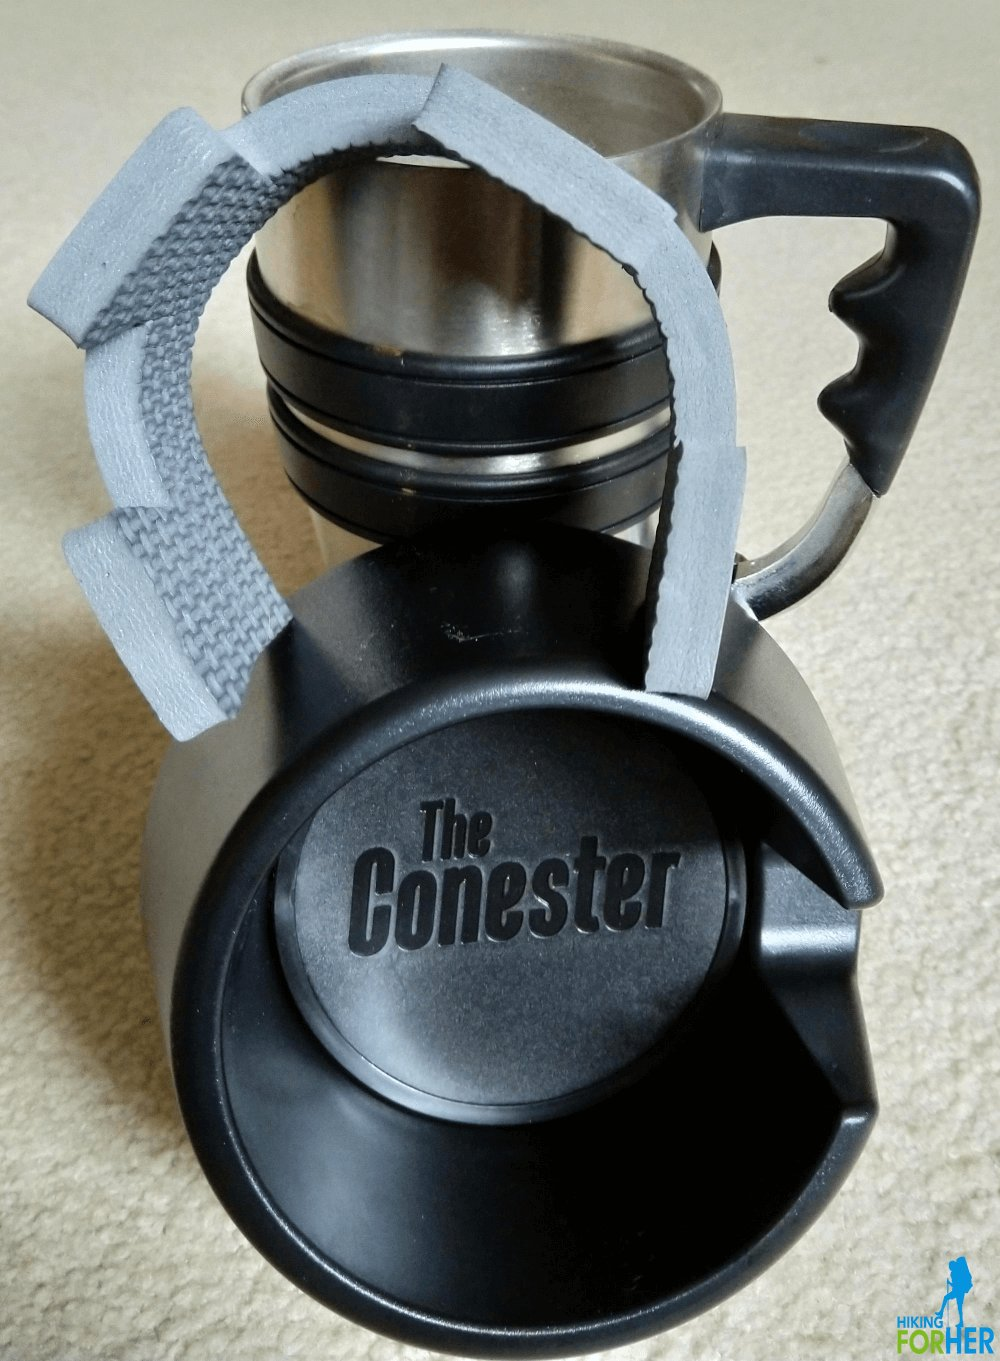 The Conester mug holder with foam insert and a metal travel mug